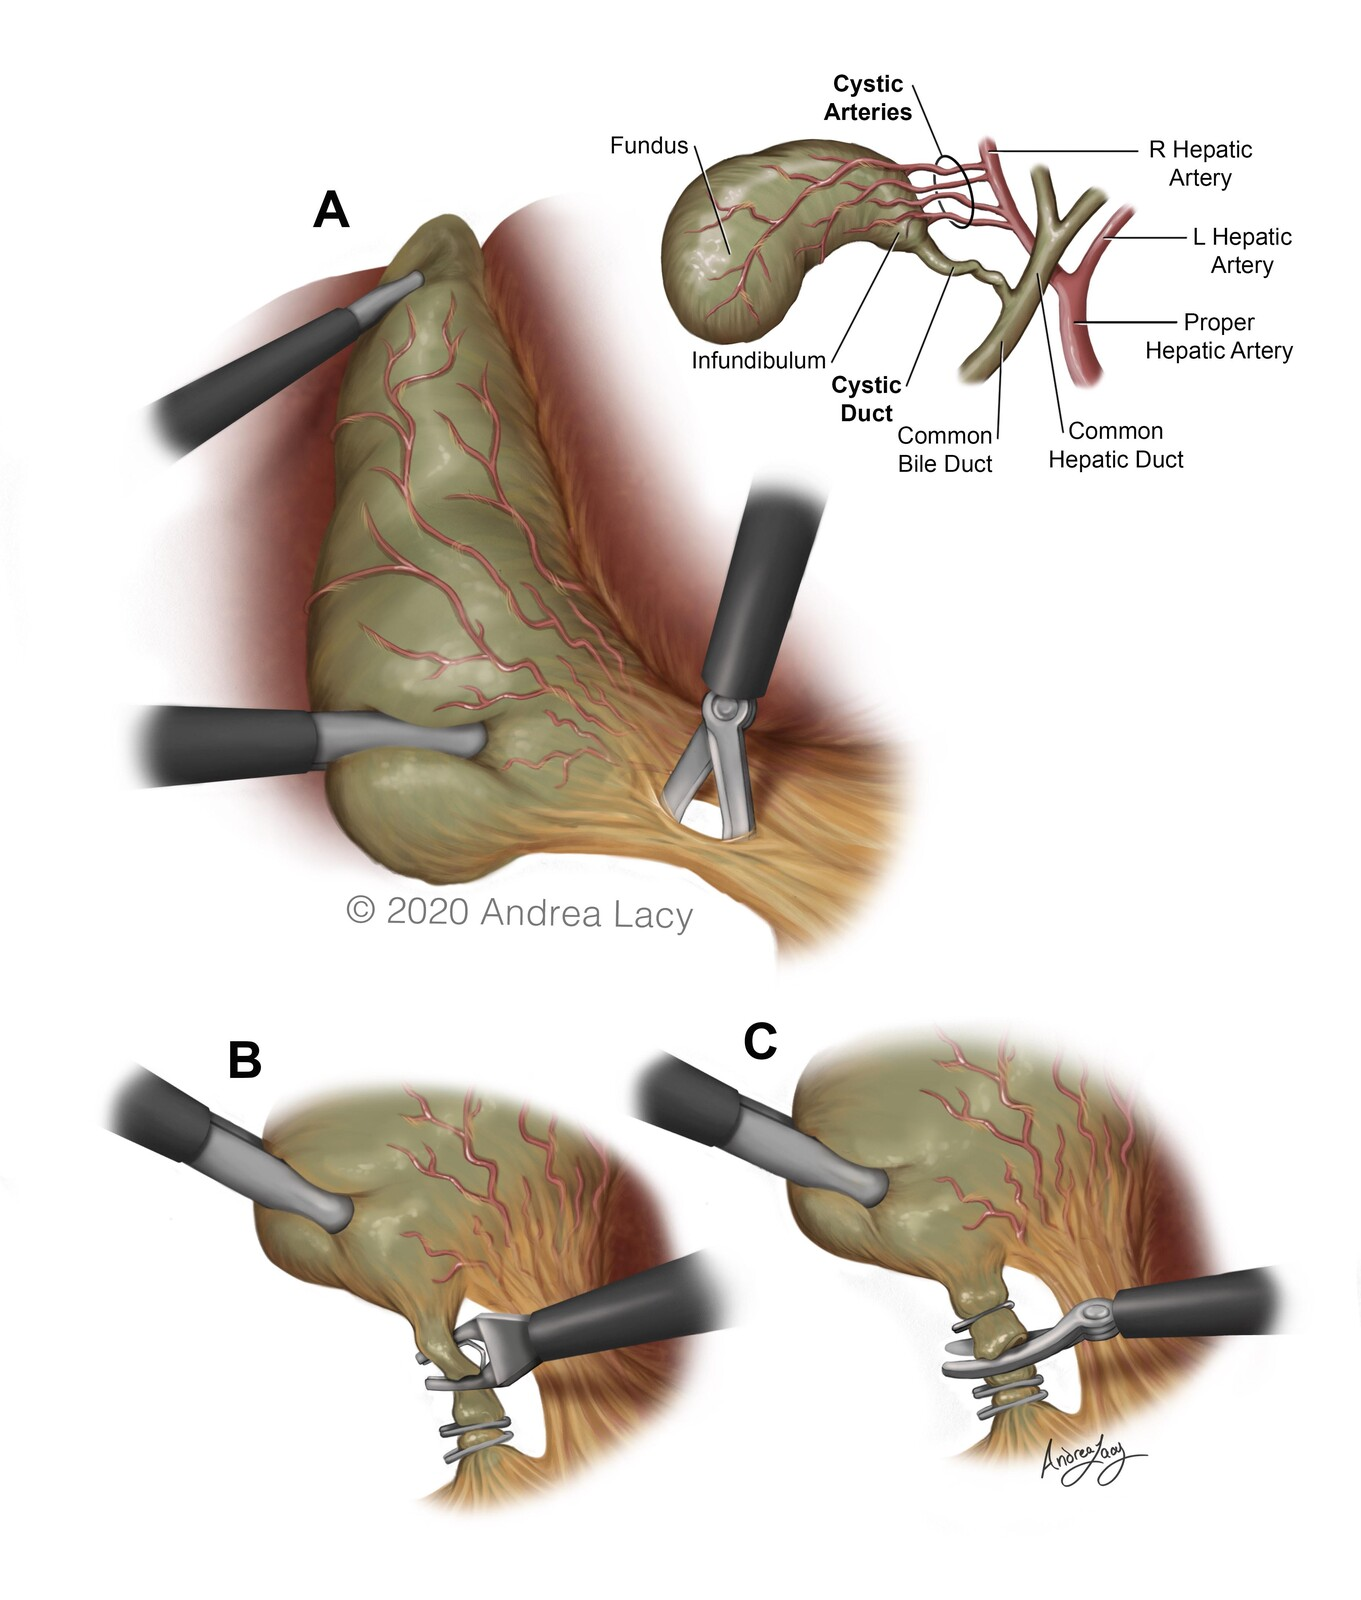 Cholecystectomy-Surgical Series